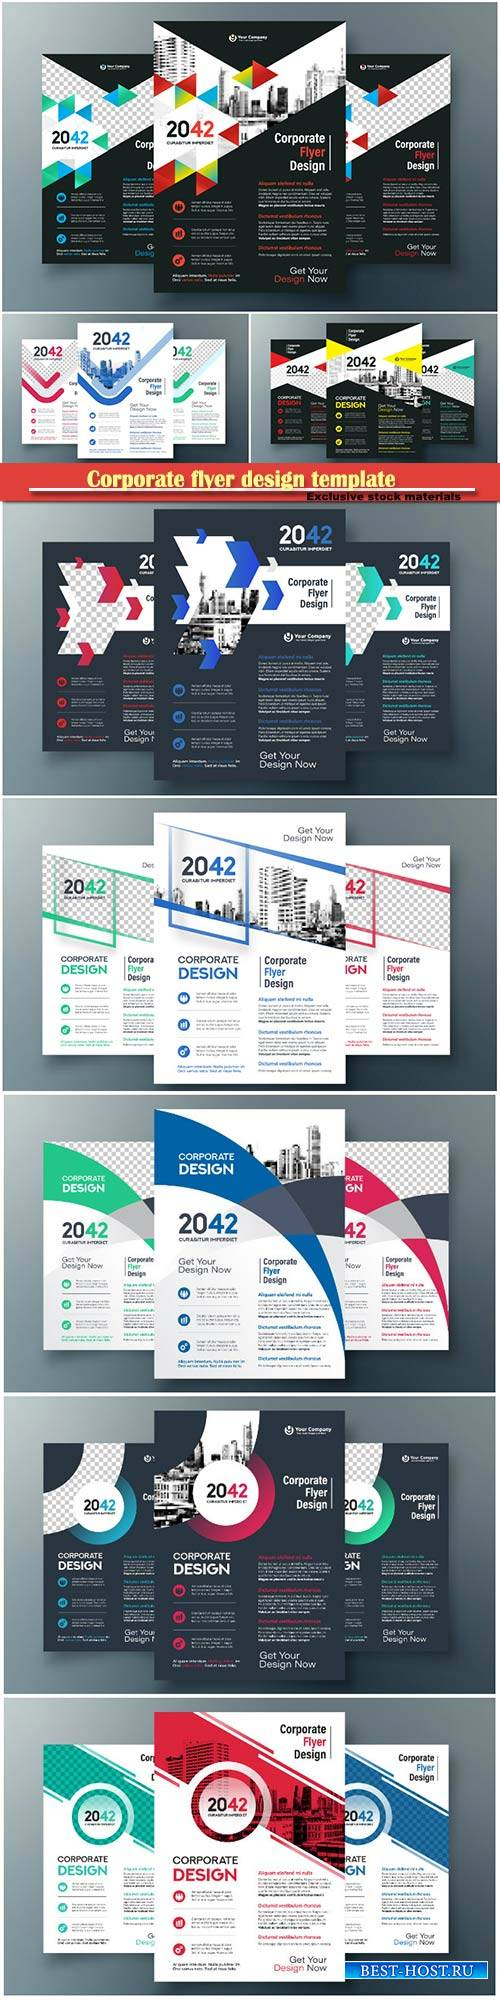 Corporate flyer design template, business vector design template